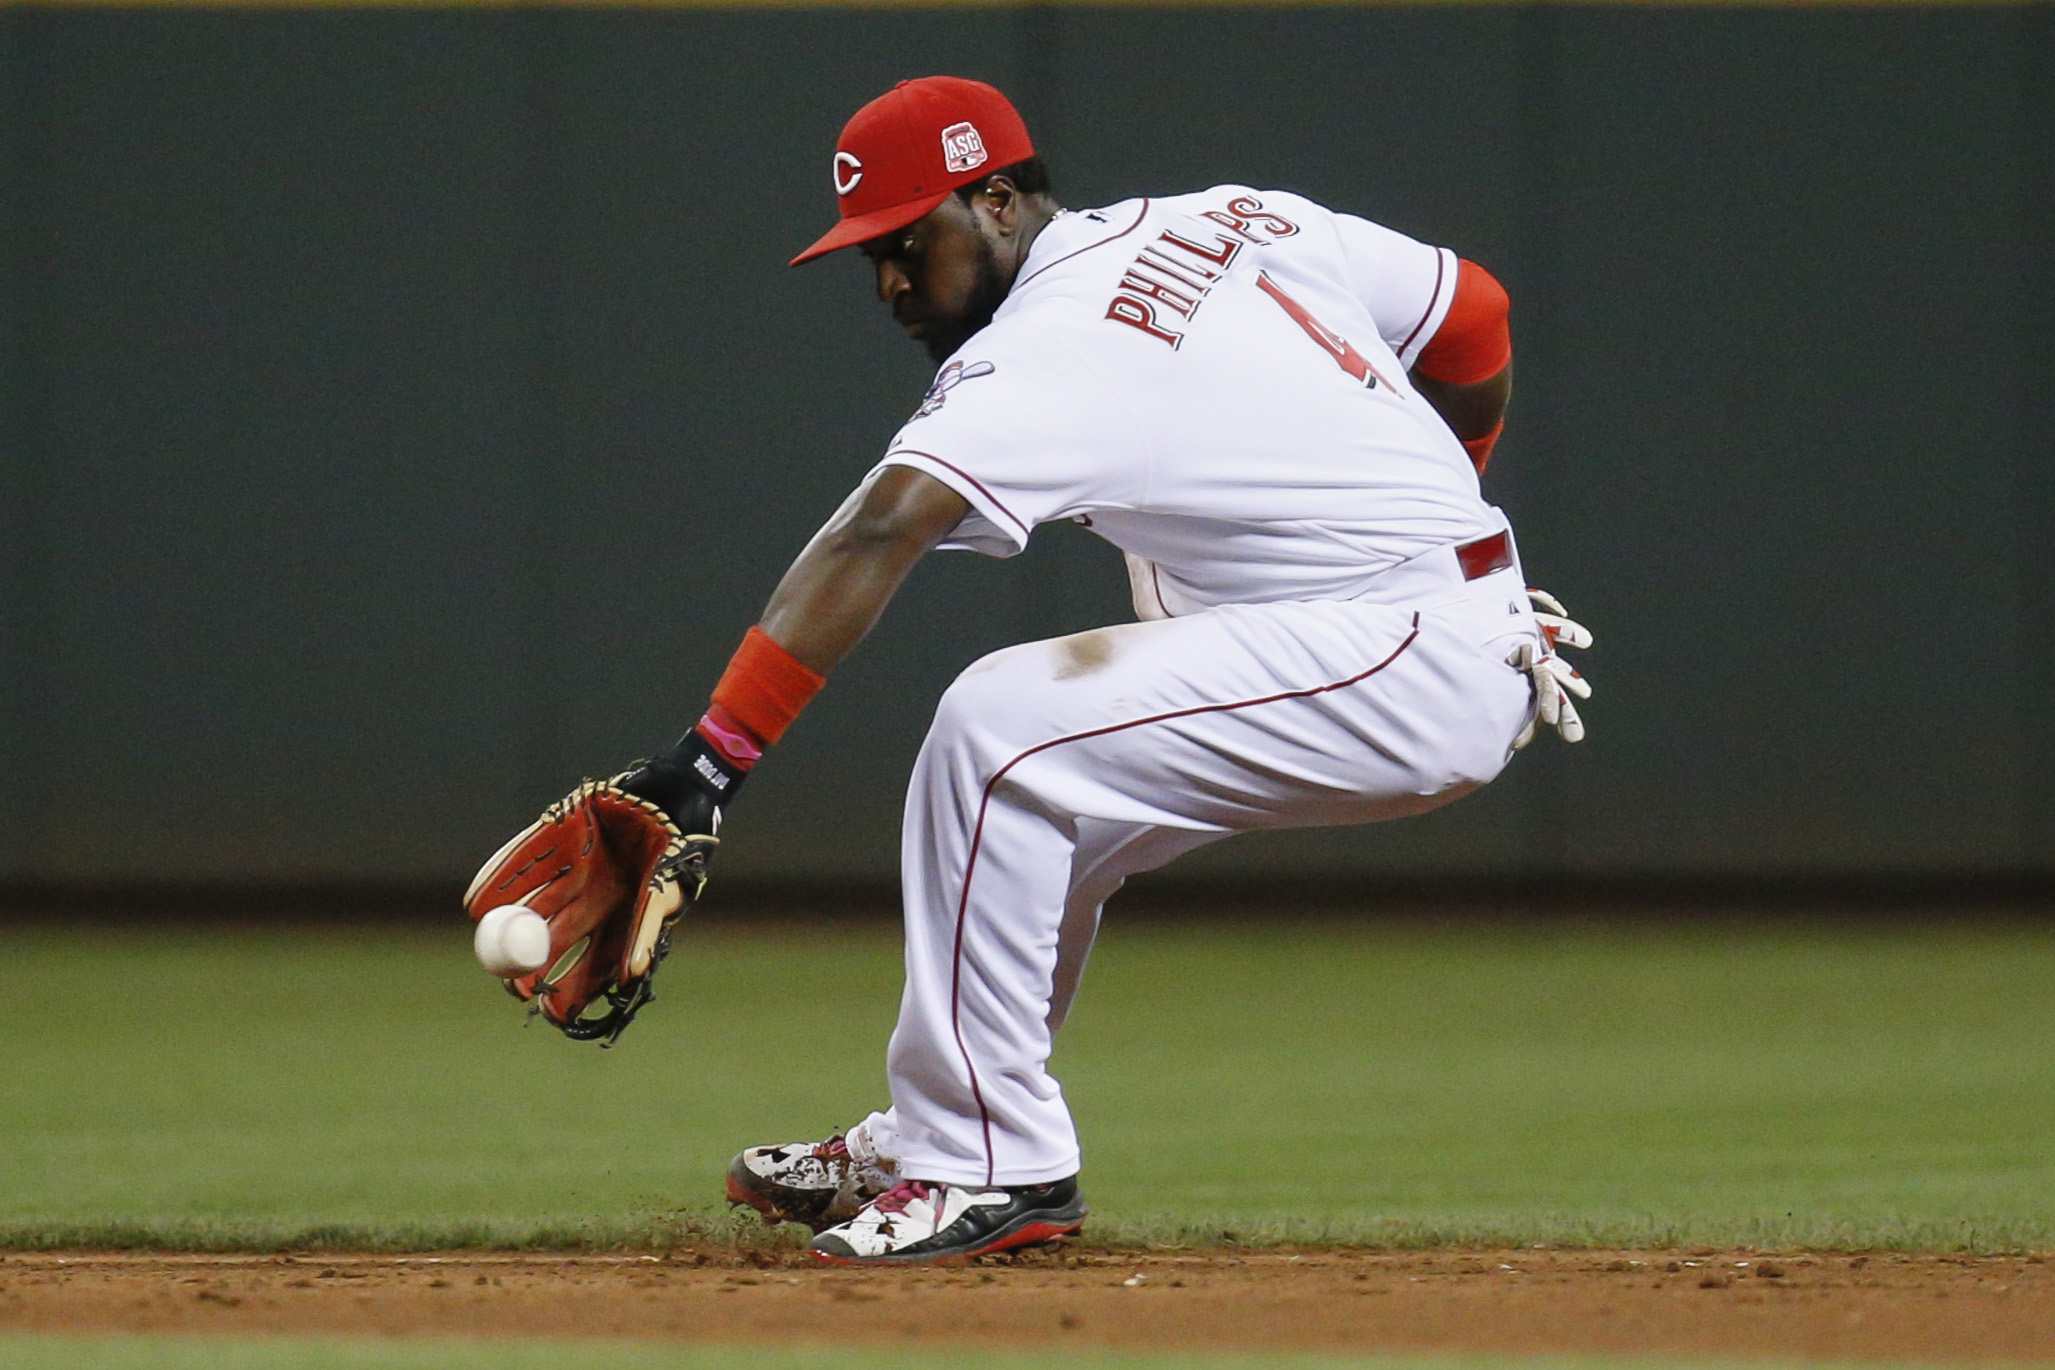 Cincinnati Reds second baseman Brandon Phillips fields a ground ball from Los Angeles Dodgers' Chase Utley during the eighth inning of a baseball game, Tuesday, Aug. 25, 2015, in Cincinnati. Phillips threw out Utley at first base. (AP Photo/John Minchillo